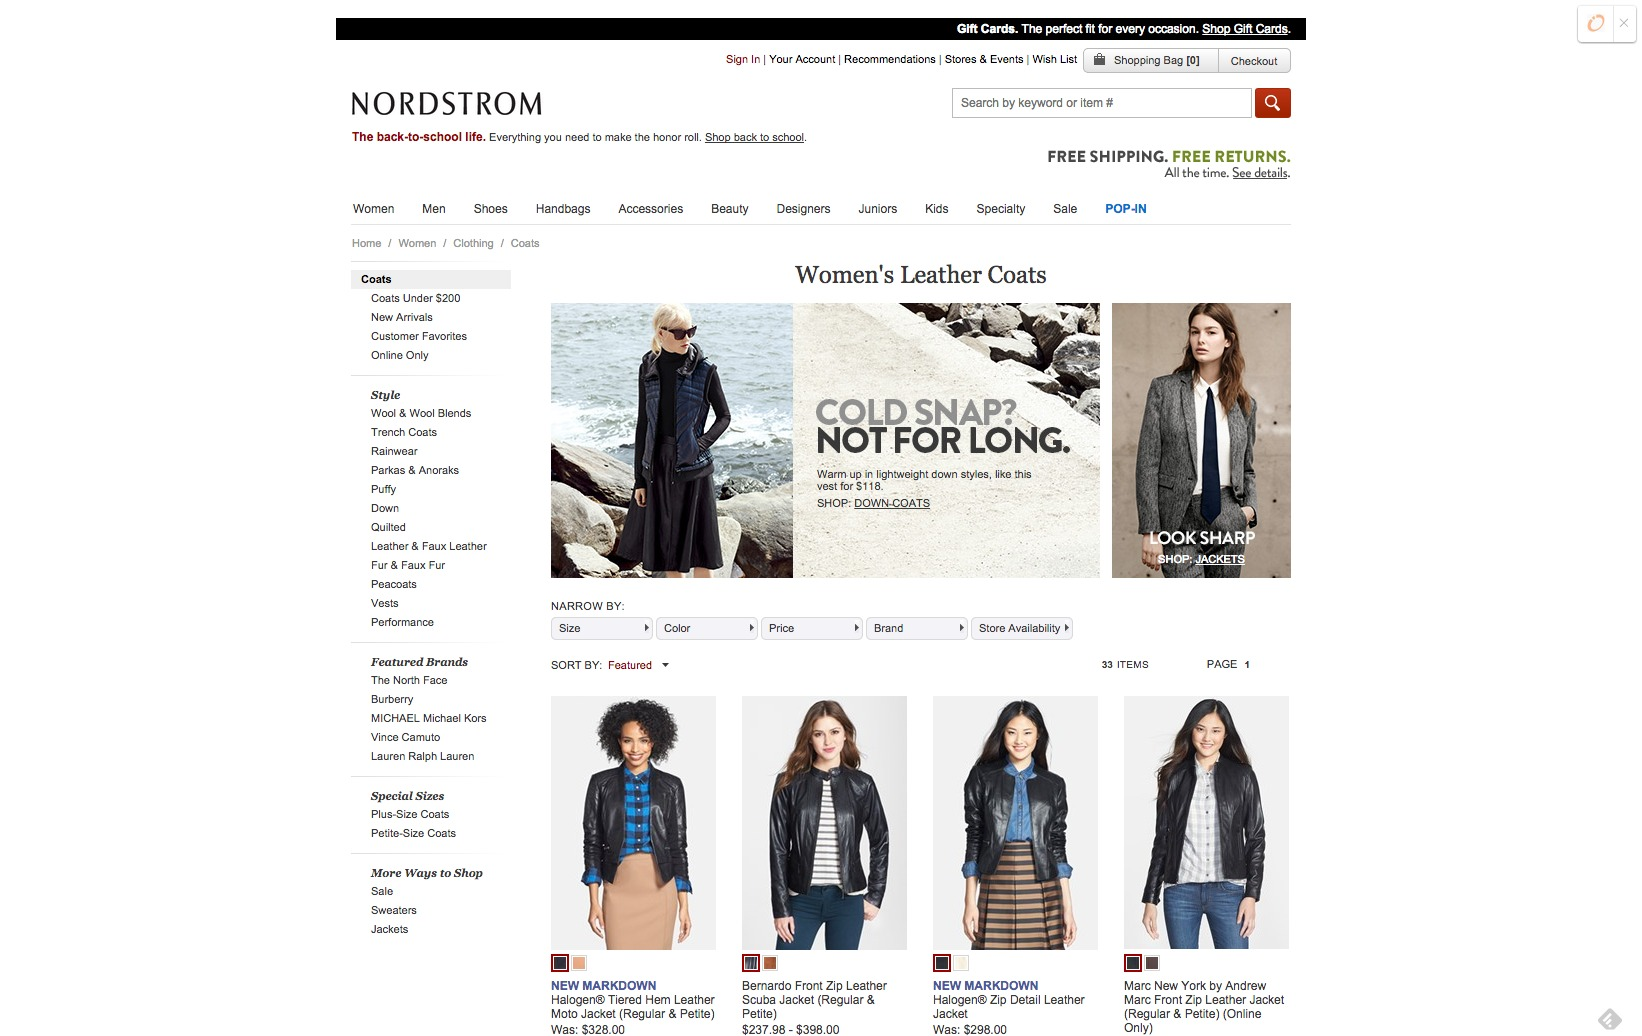 Nordstorm Category Page